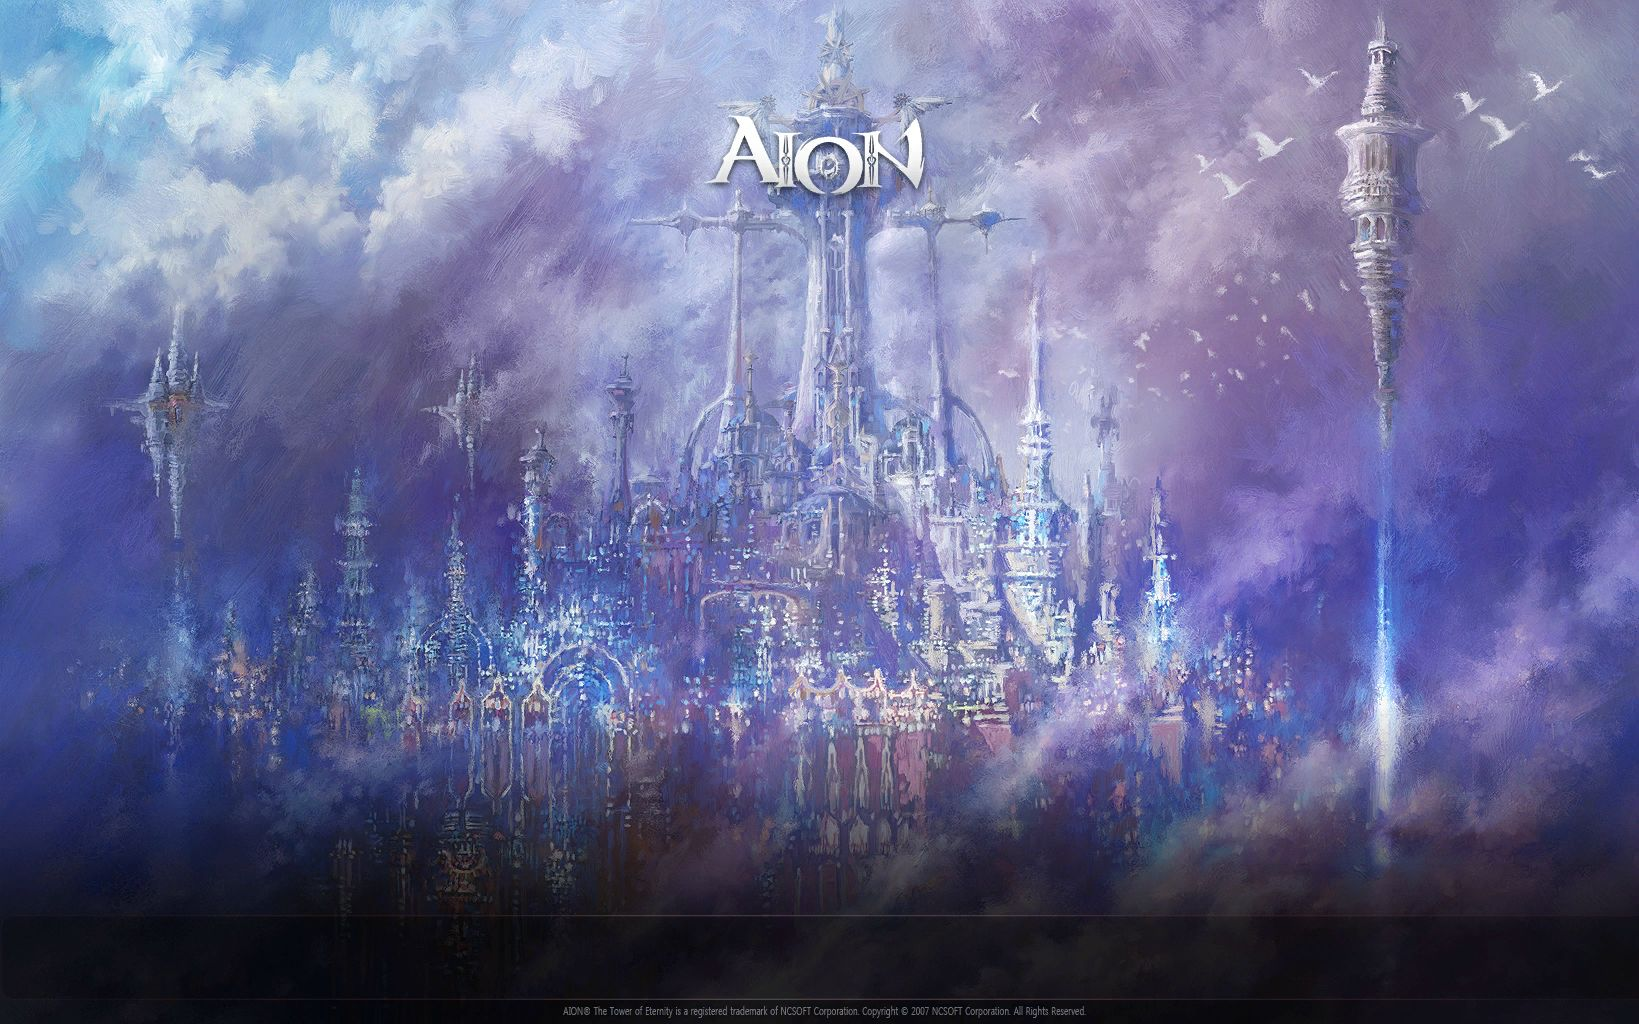 aion mmorpg editoriale